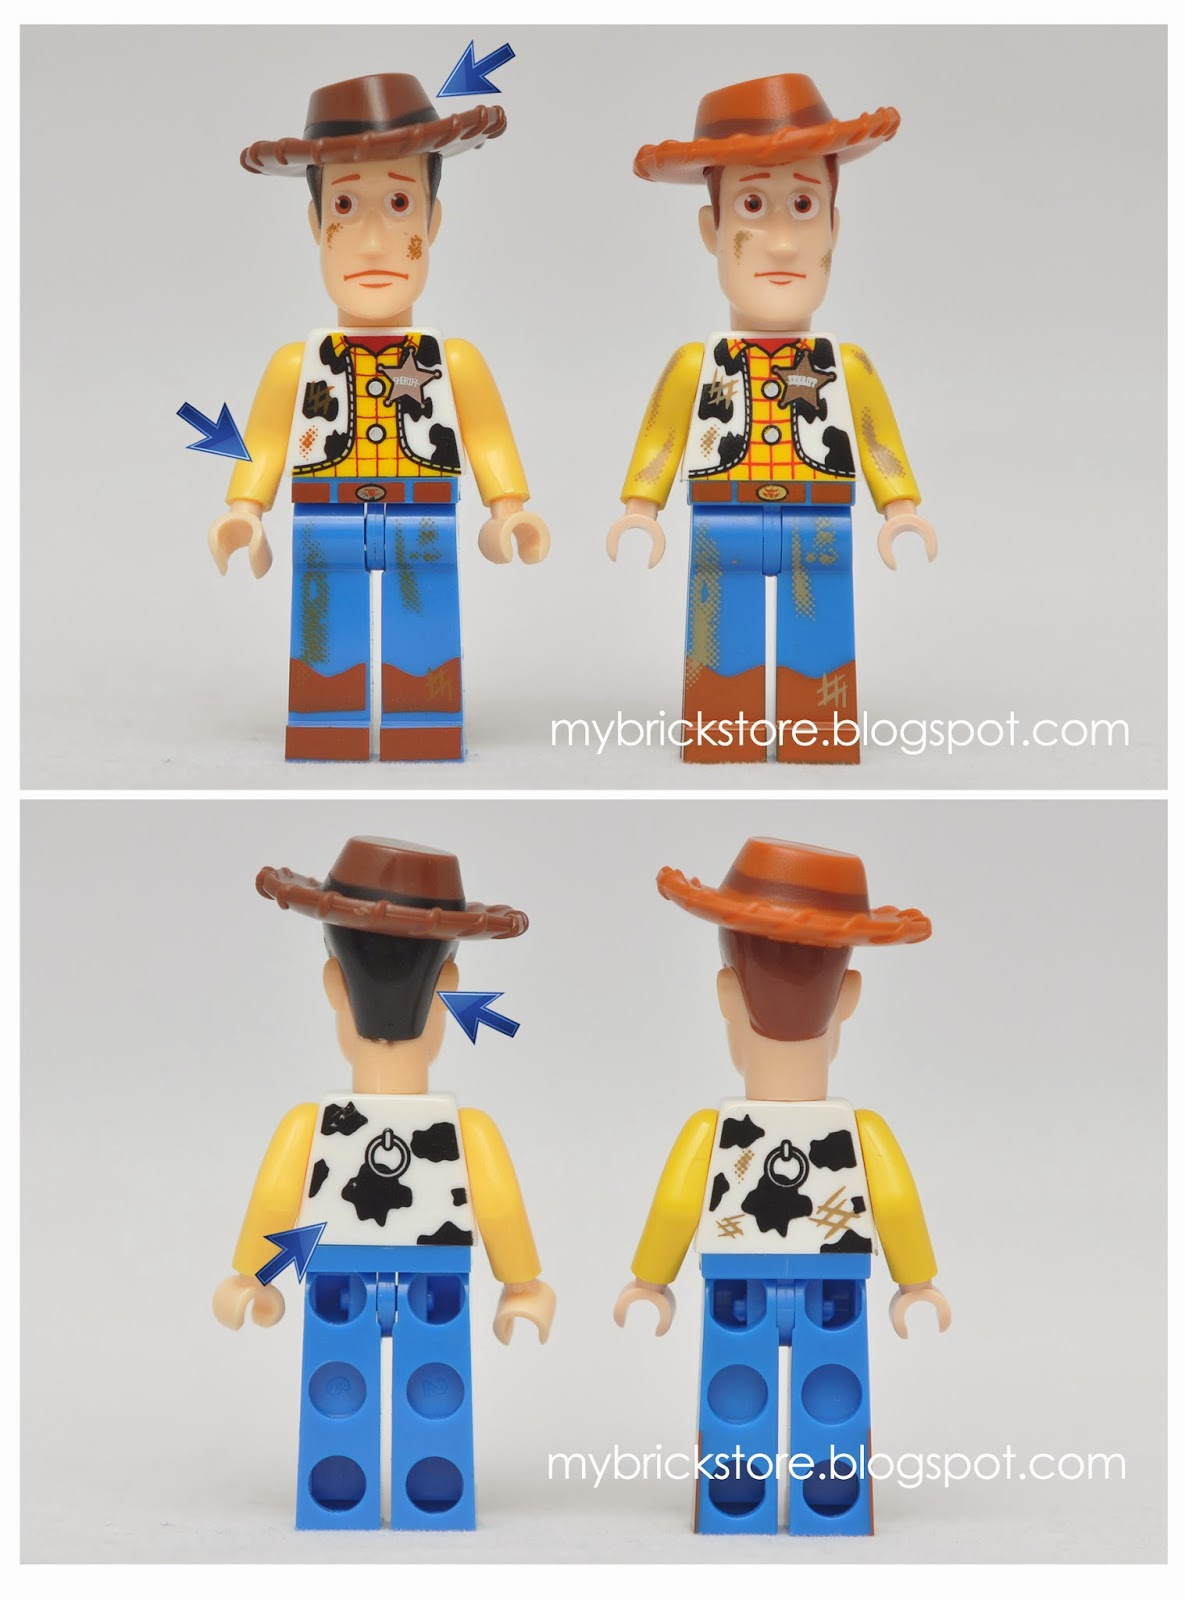 Lego Toy Story : My brick store lego toy story by sheng yuan sy